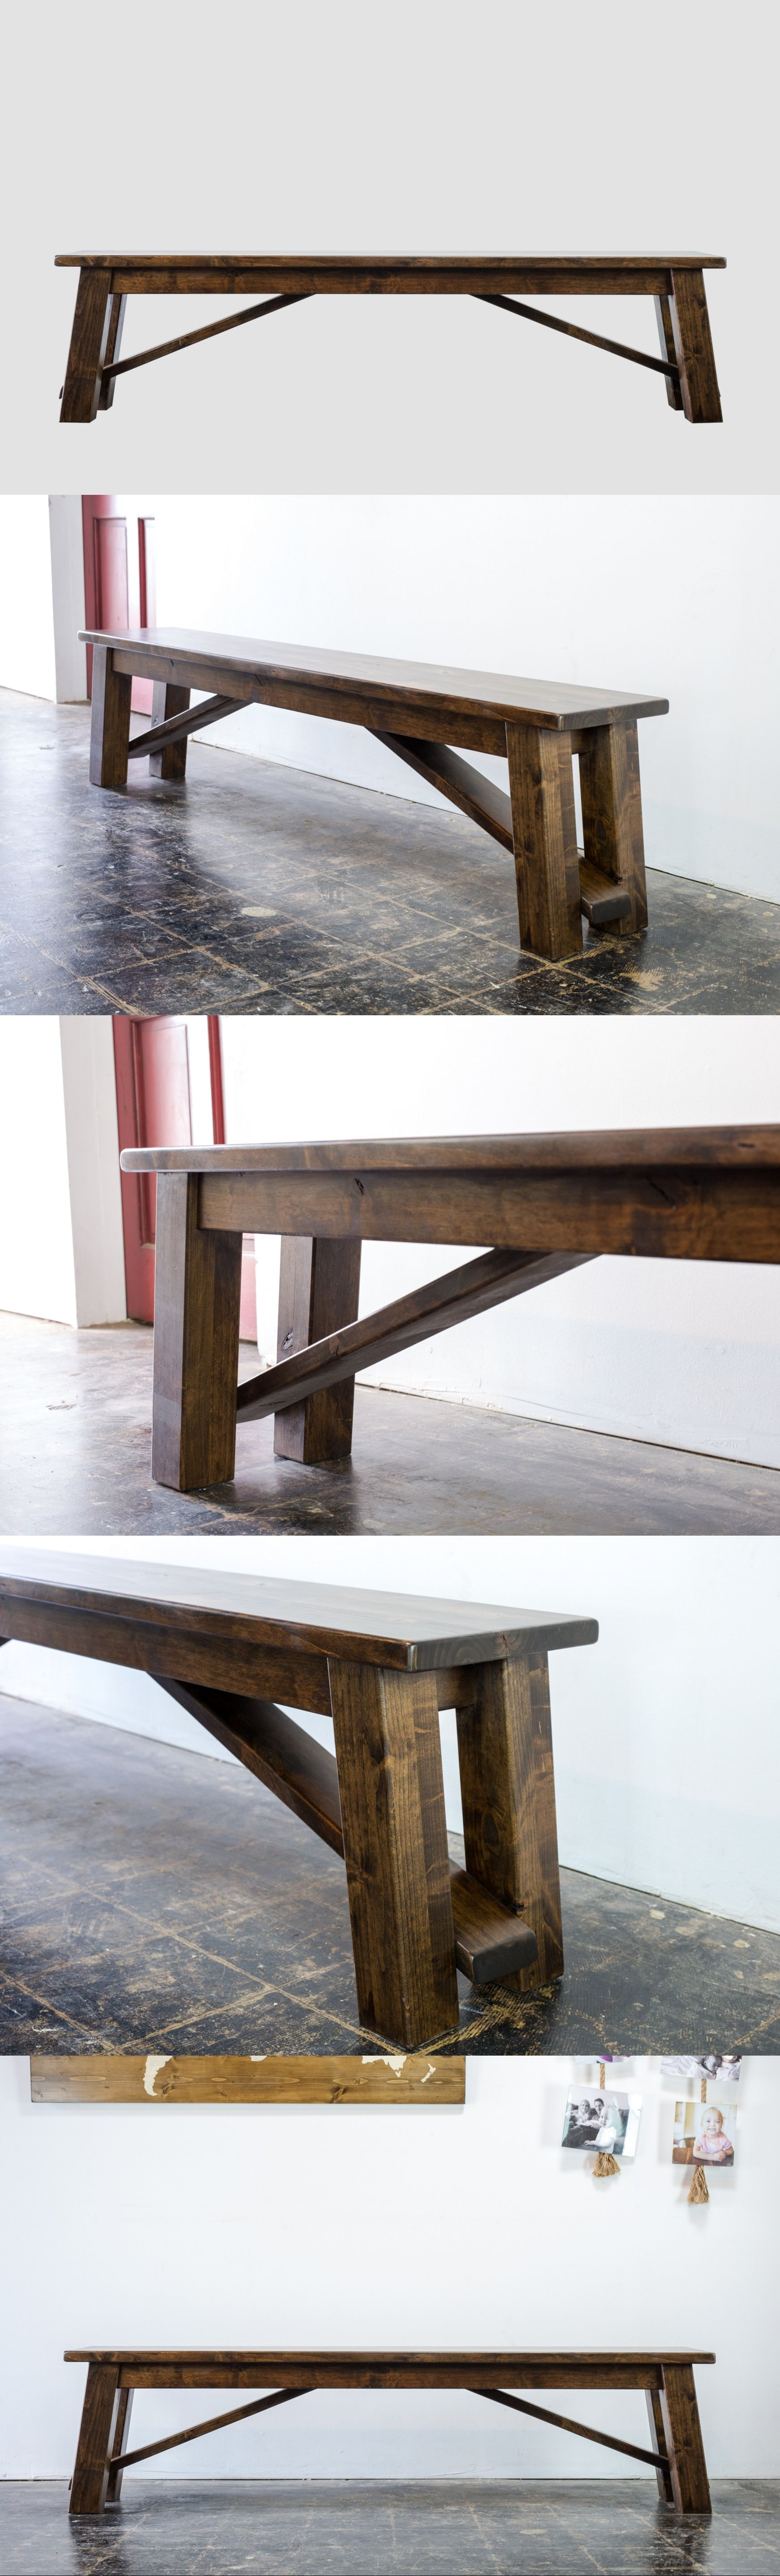 one way to build a garden stool. stool shematics | Woodworking ...